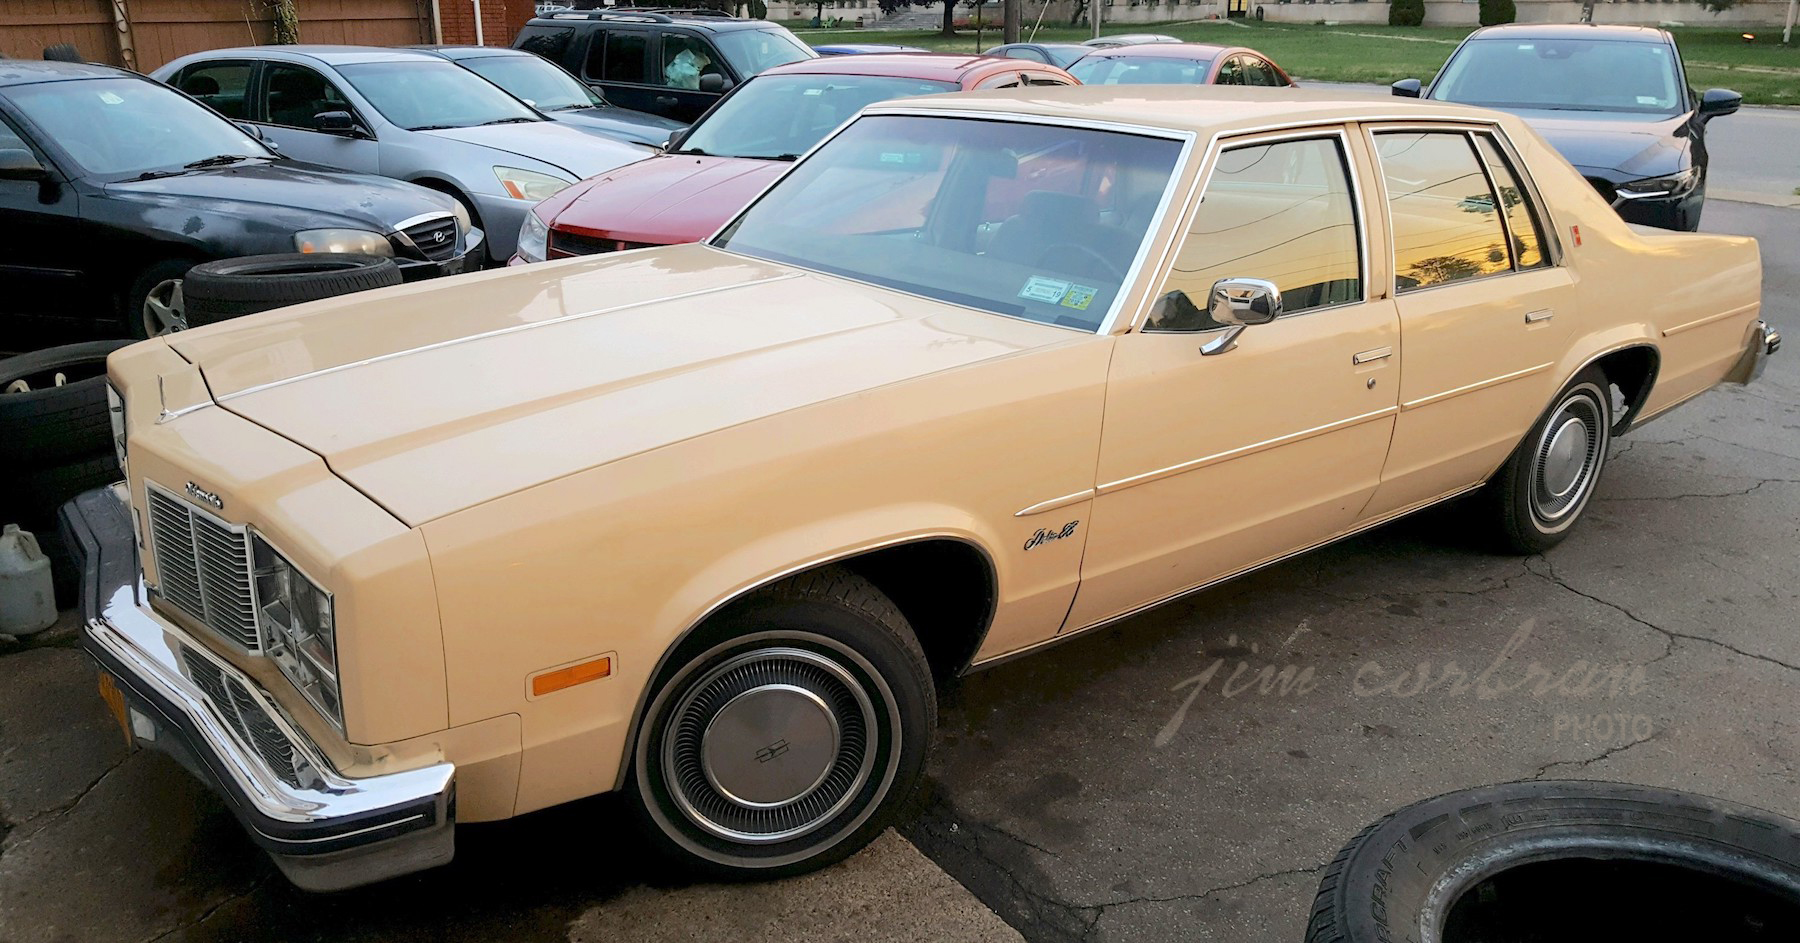 RealRides of WNY - 1977 Olds Delta 88